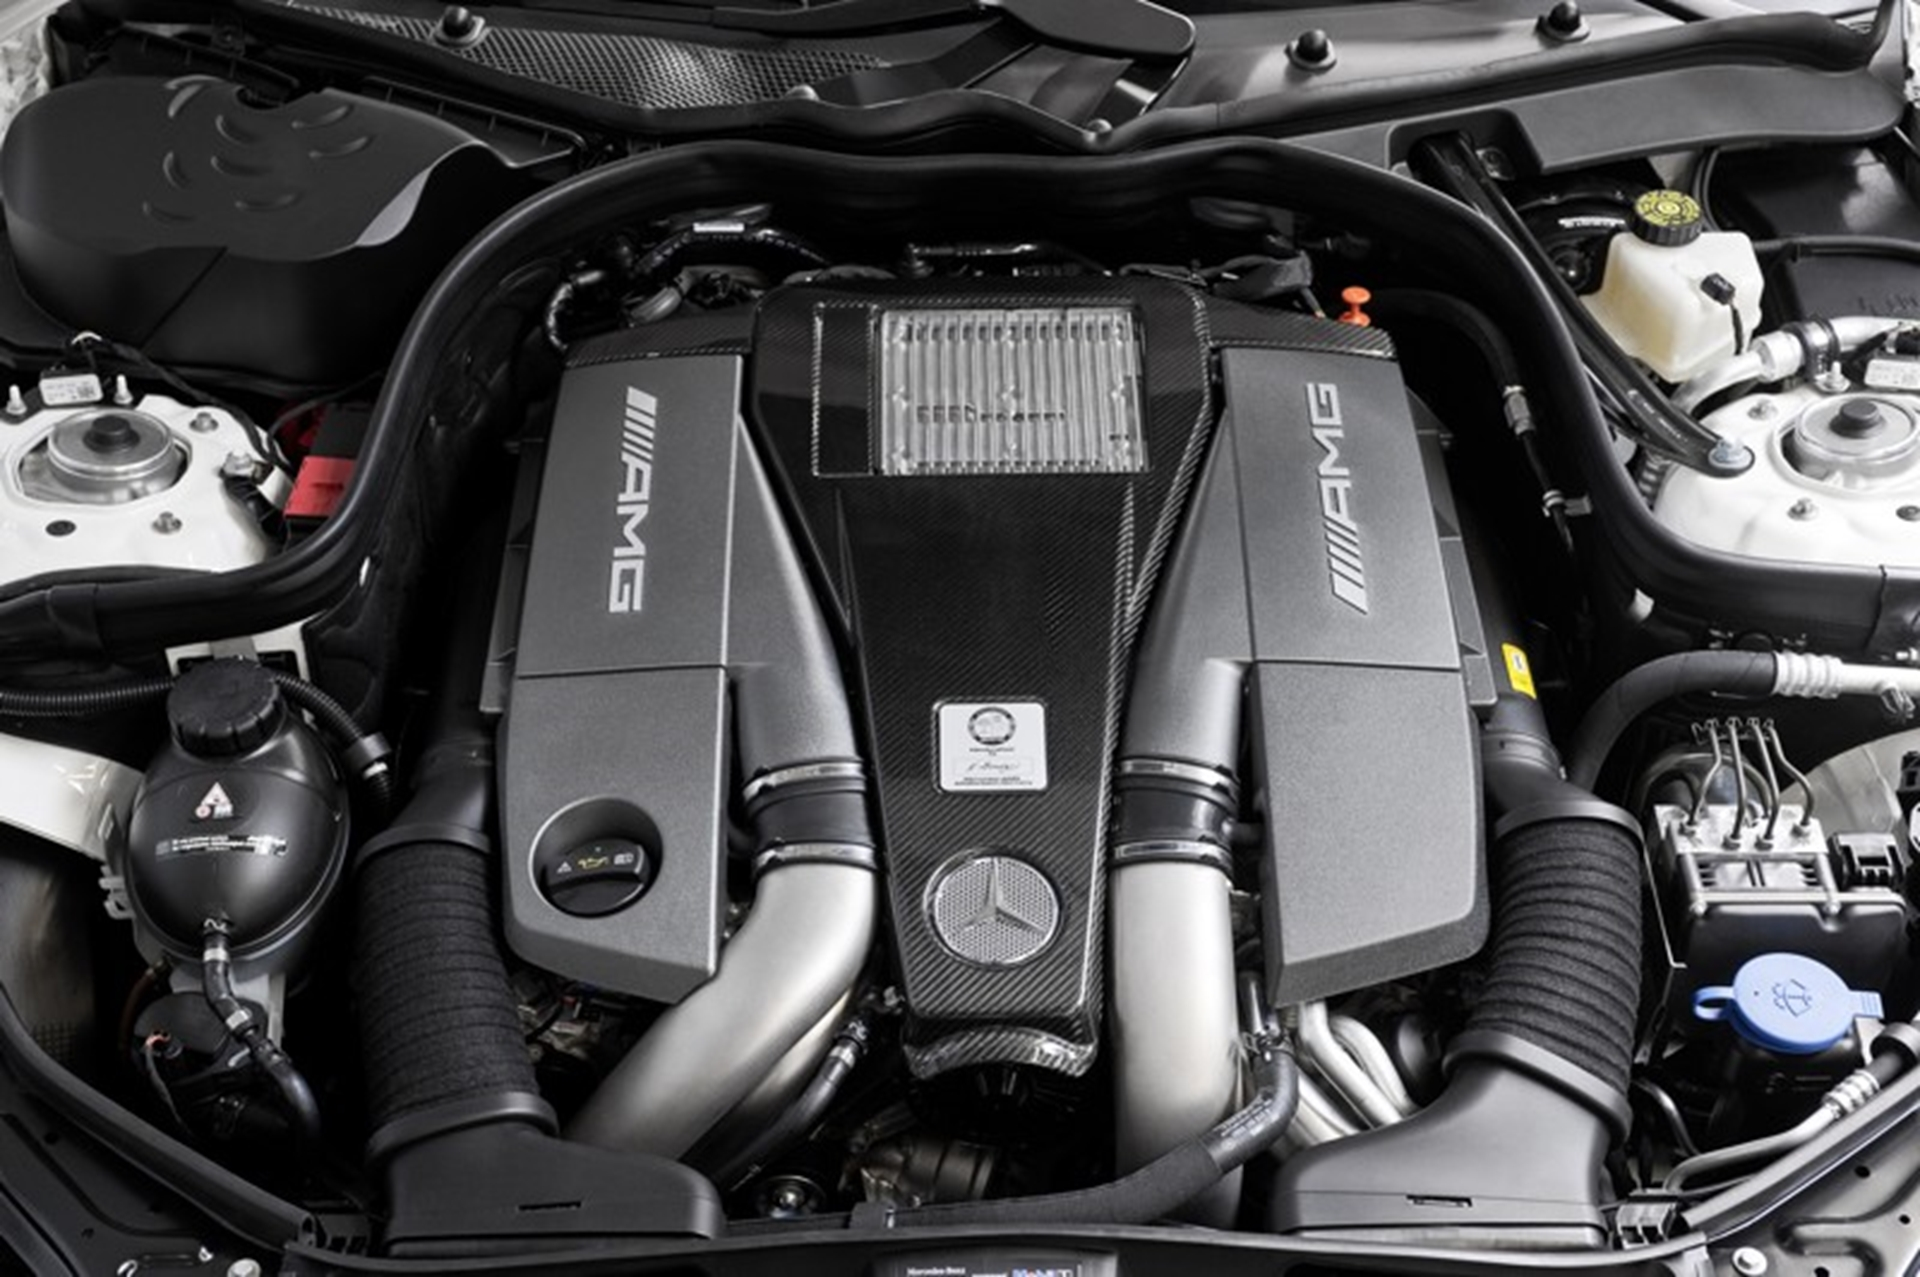 Mercedes Benz E63 AMG Engine